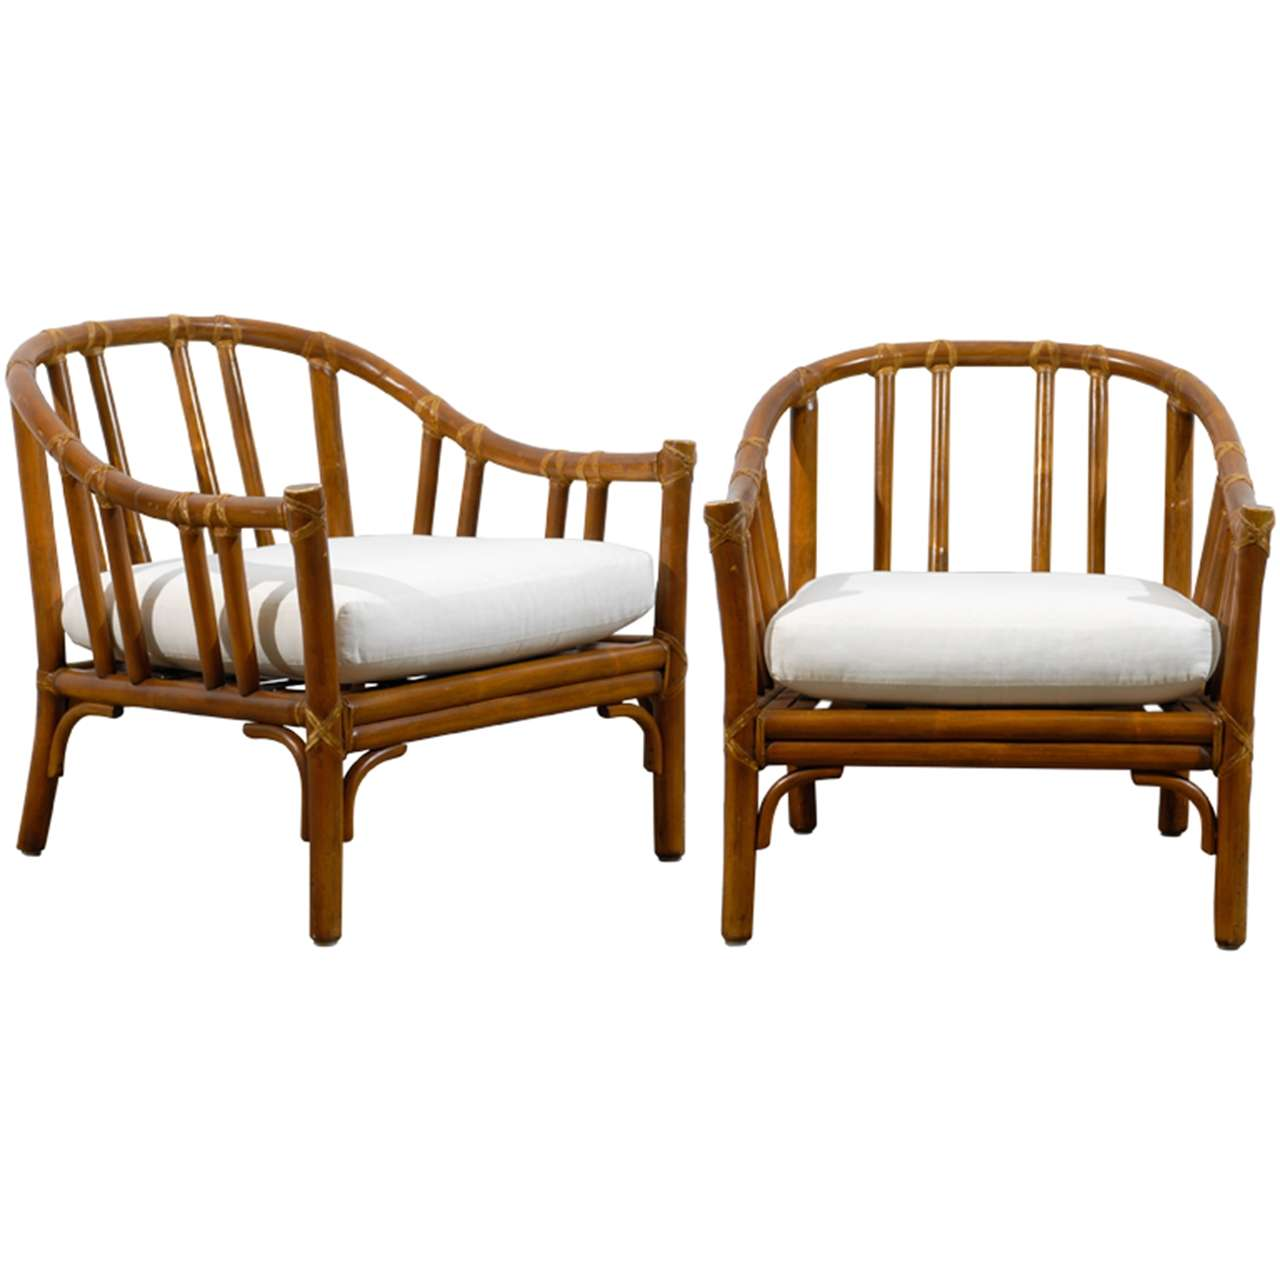 Handsome Pair Of Bamboo Lounge Club Chairs By Mcguire For